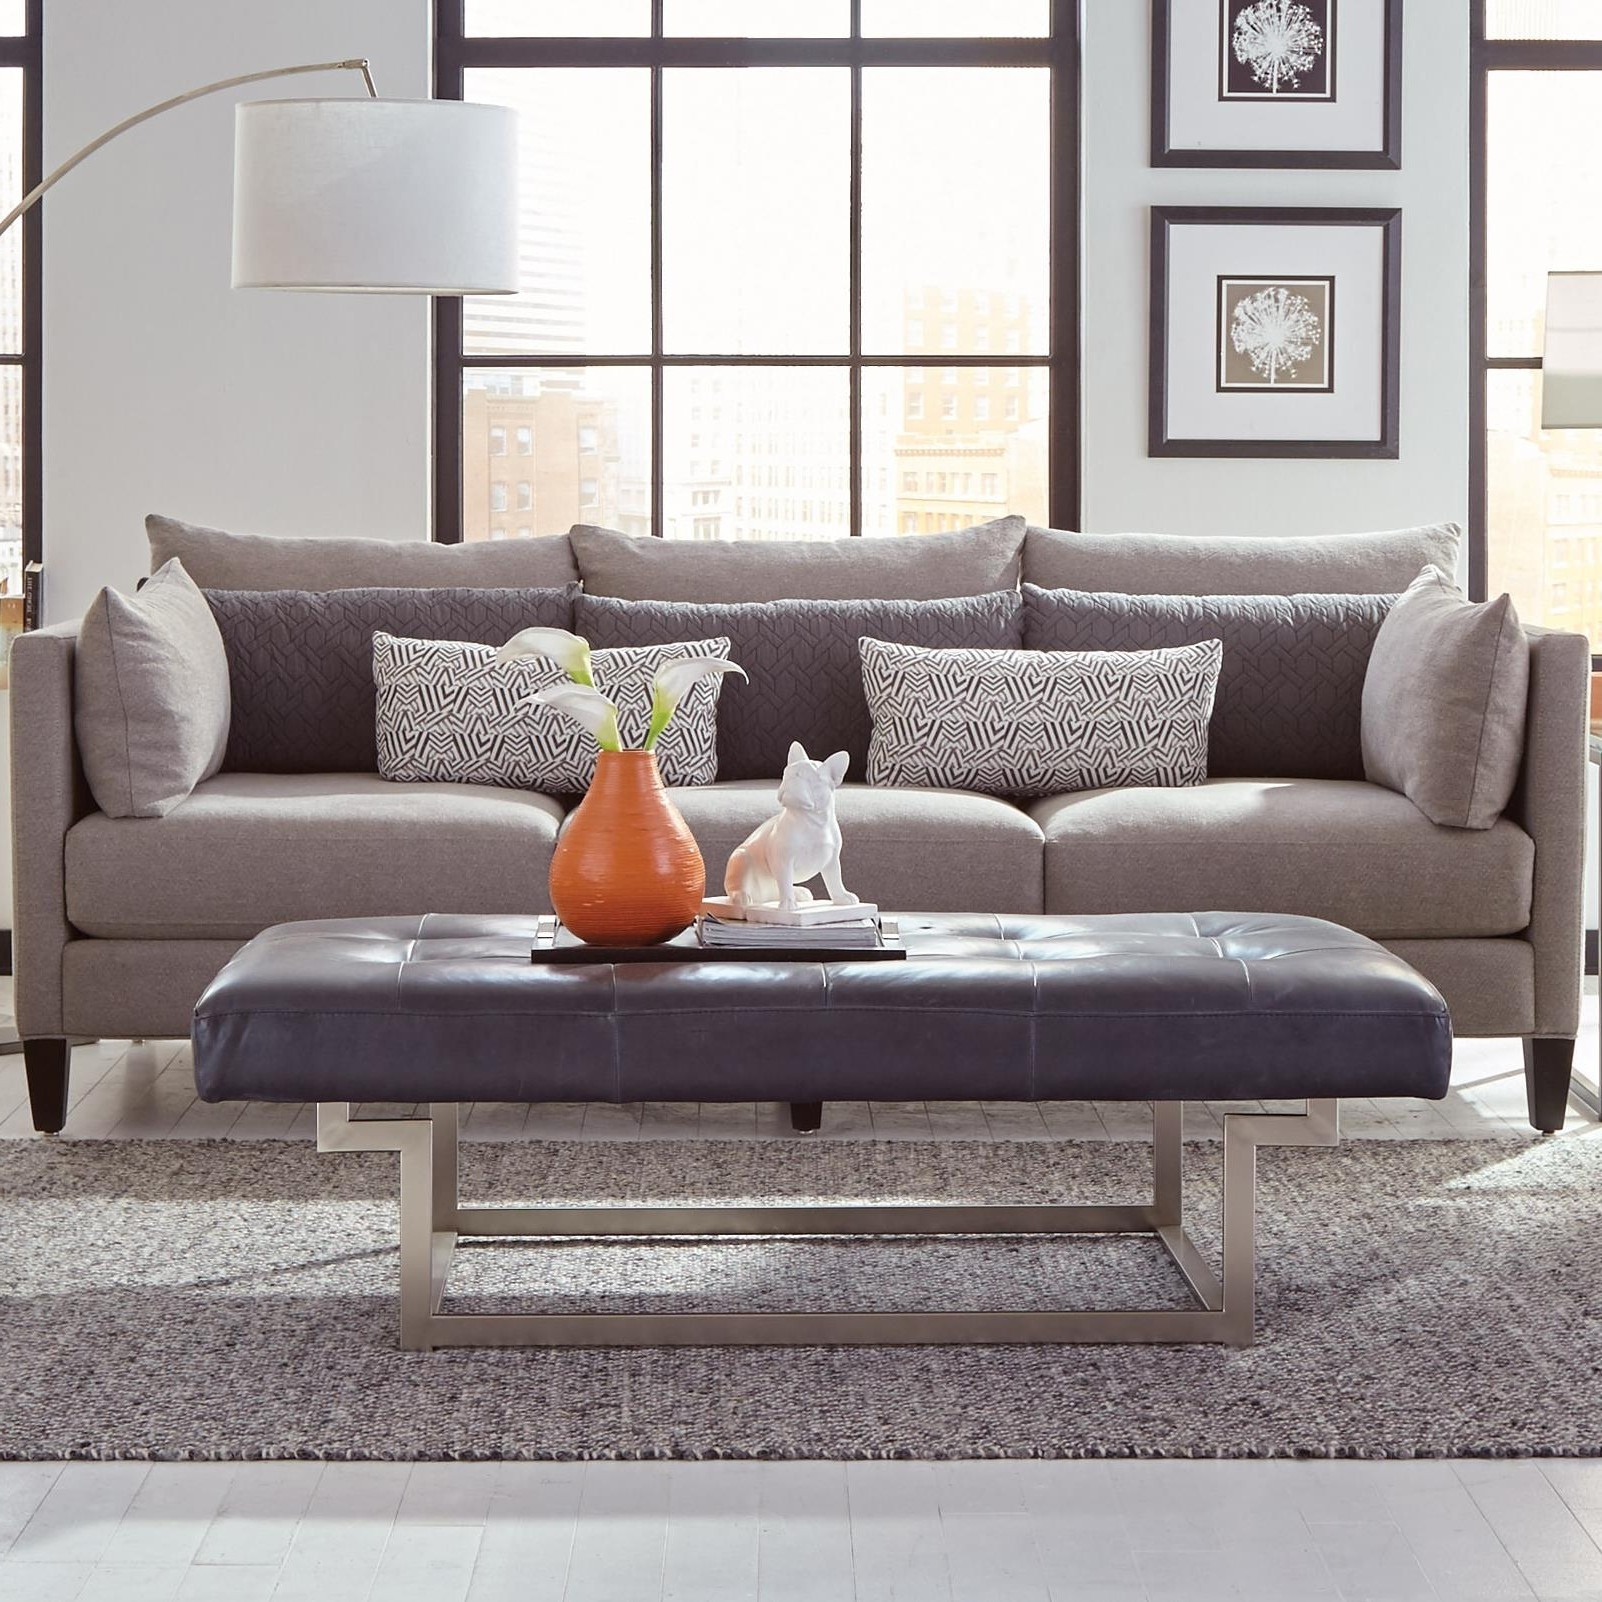 Windsor Sofas Within Best And Newest Windsor Transitional Estate Sofajonathan Louis – Can't Afford (View 16 of 20)